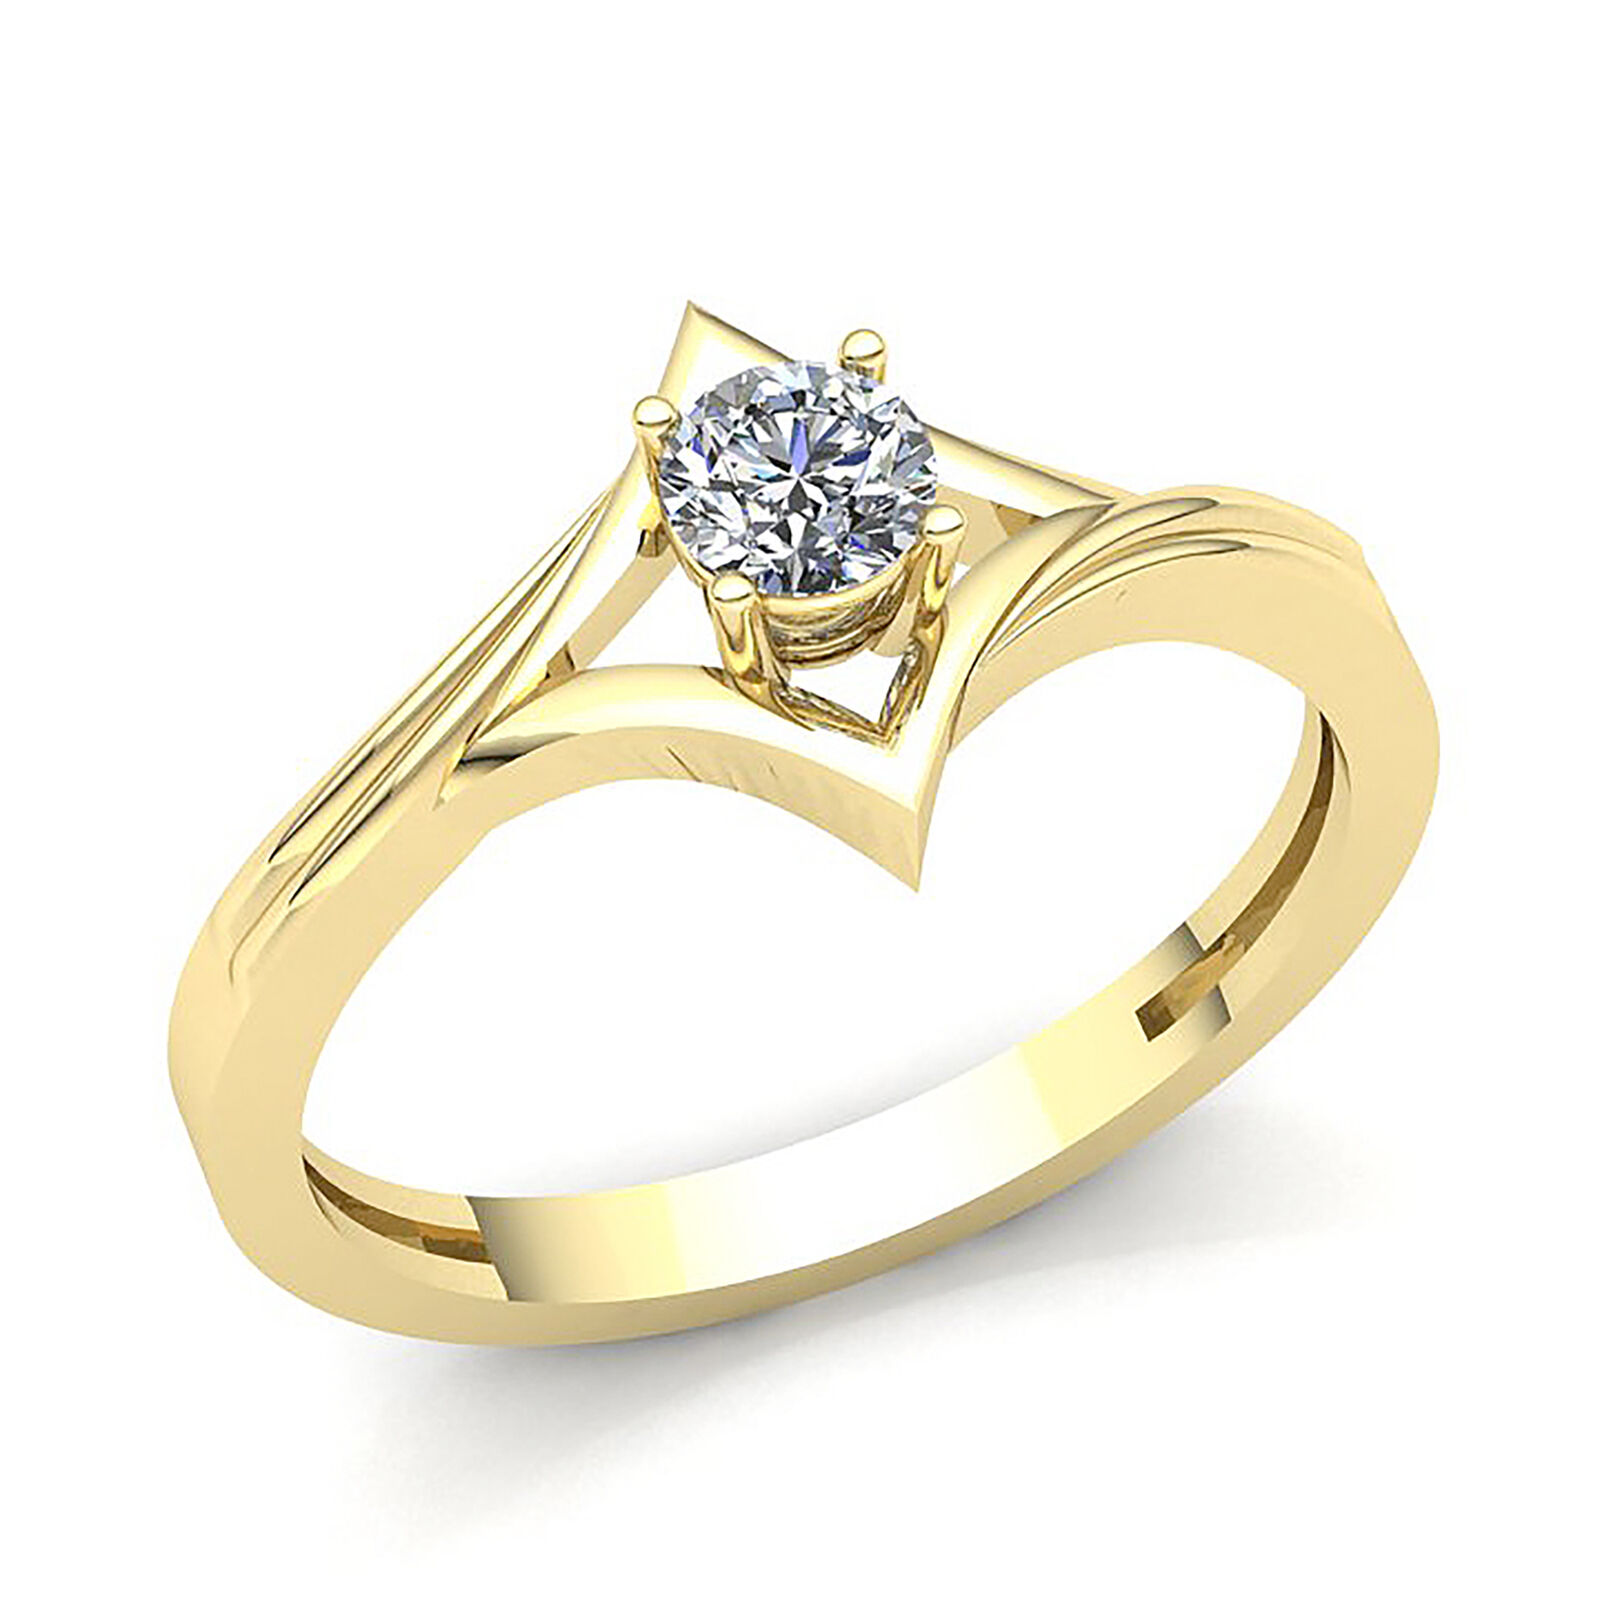 cf2f27f39d674 Diamond Round 0.60ctw Women's gold 10K Solid Ring Engagement ...